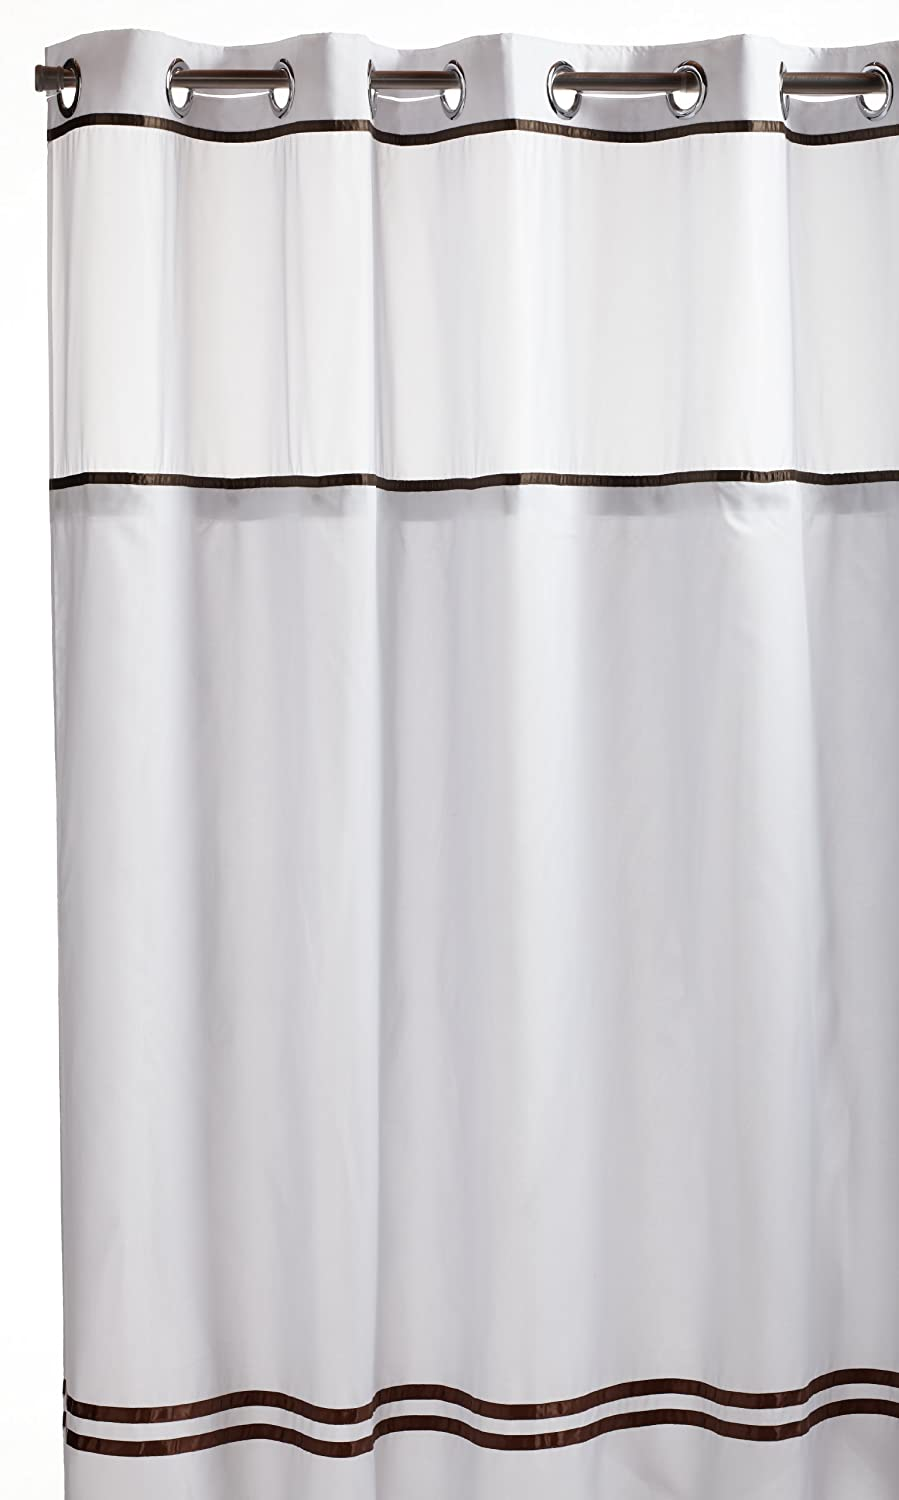 Hookless Fabric Shower Curtain with Built in Liner - White/Brown RBH40ES305